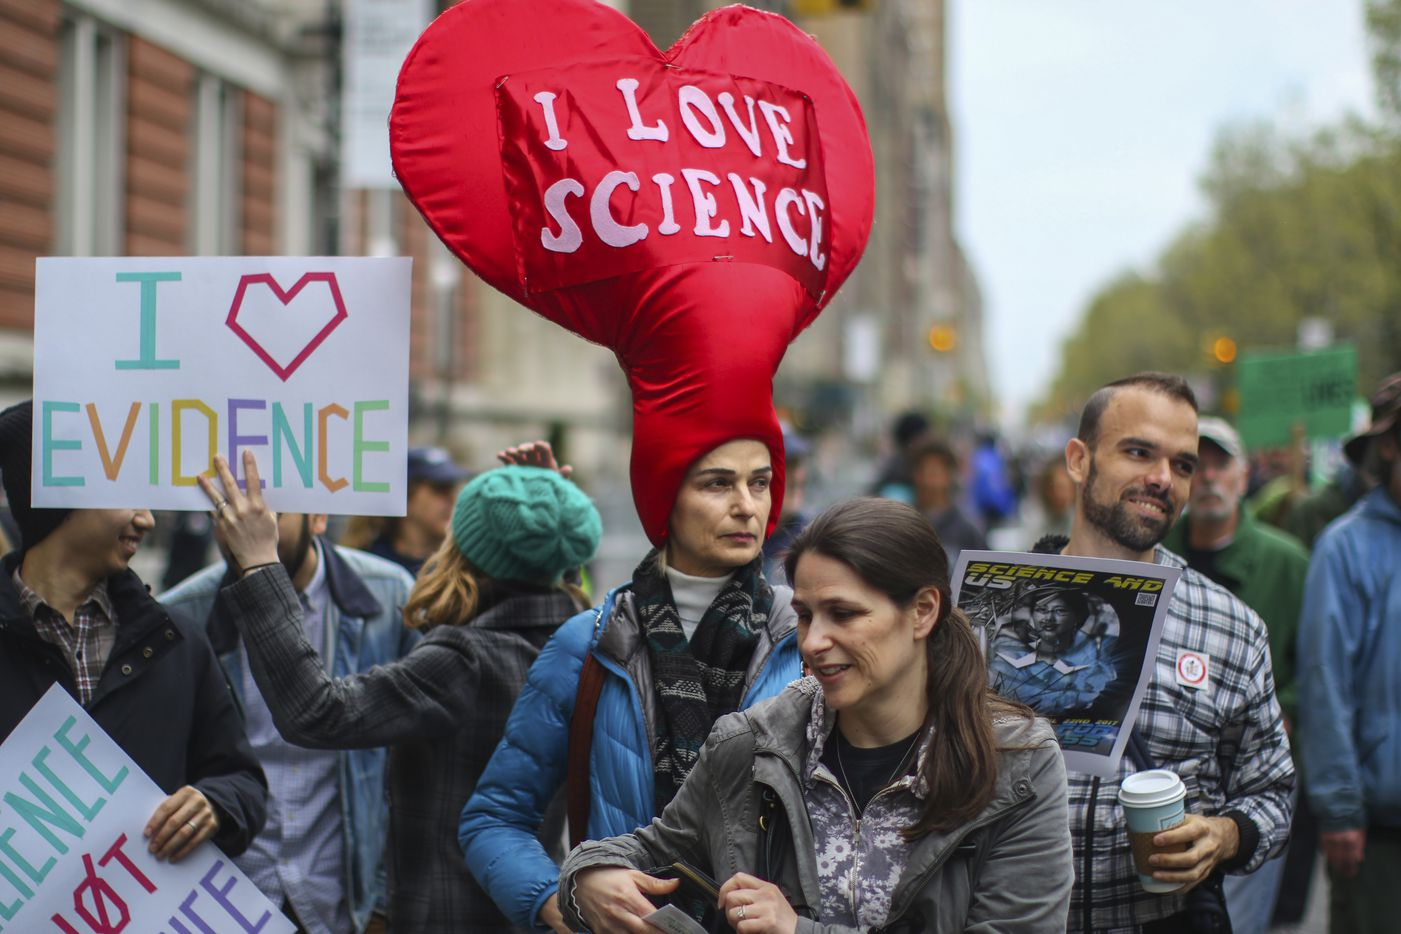 Esti Grifel waits before the March for Science in New York, April 22, 2017. Thousands of scientists and science advocates demonstrated in Washington and in smaller events around the world to support, defend and celebrate the scientific enterprise. (Change W. Lee/The New York Times)